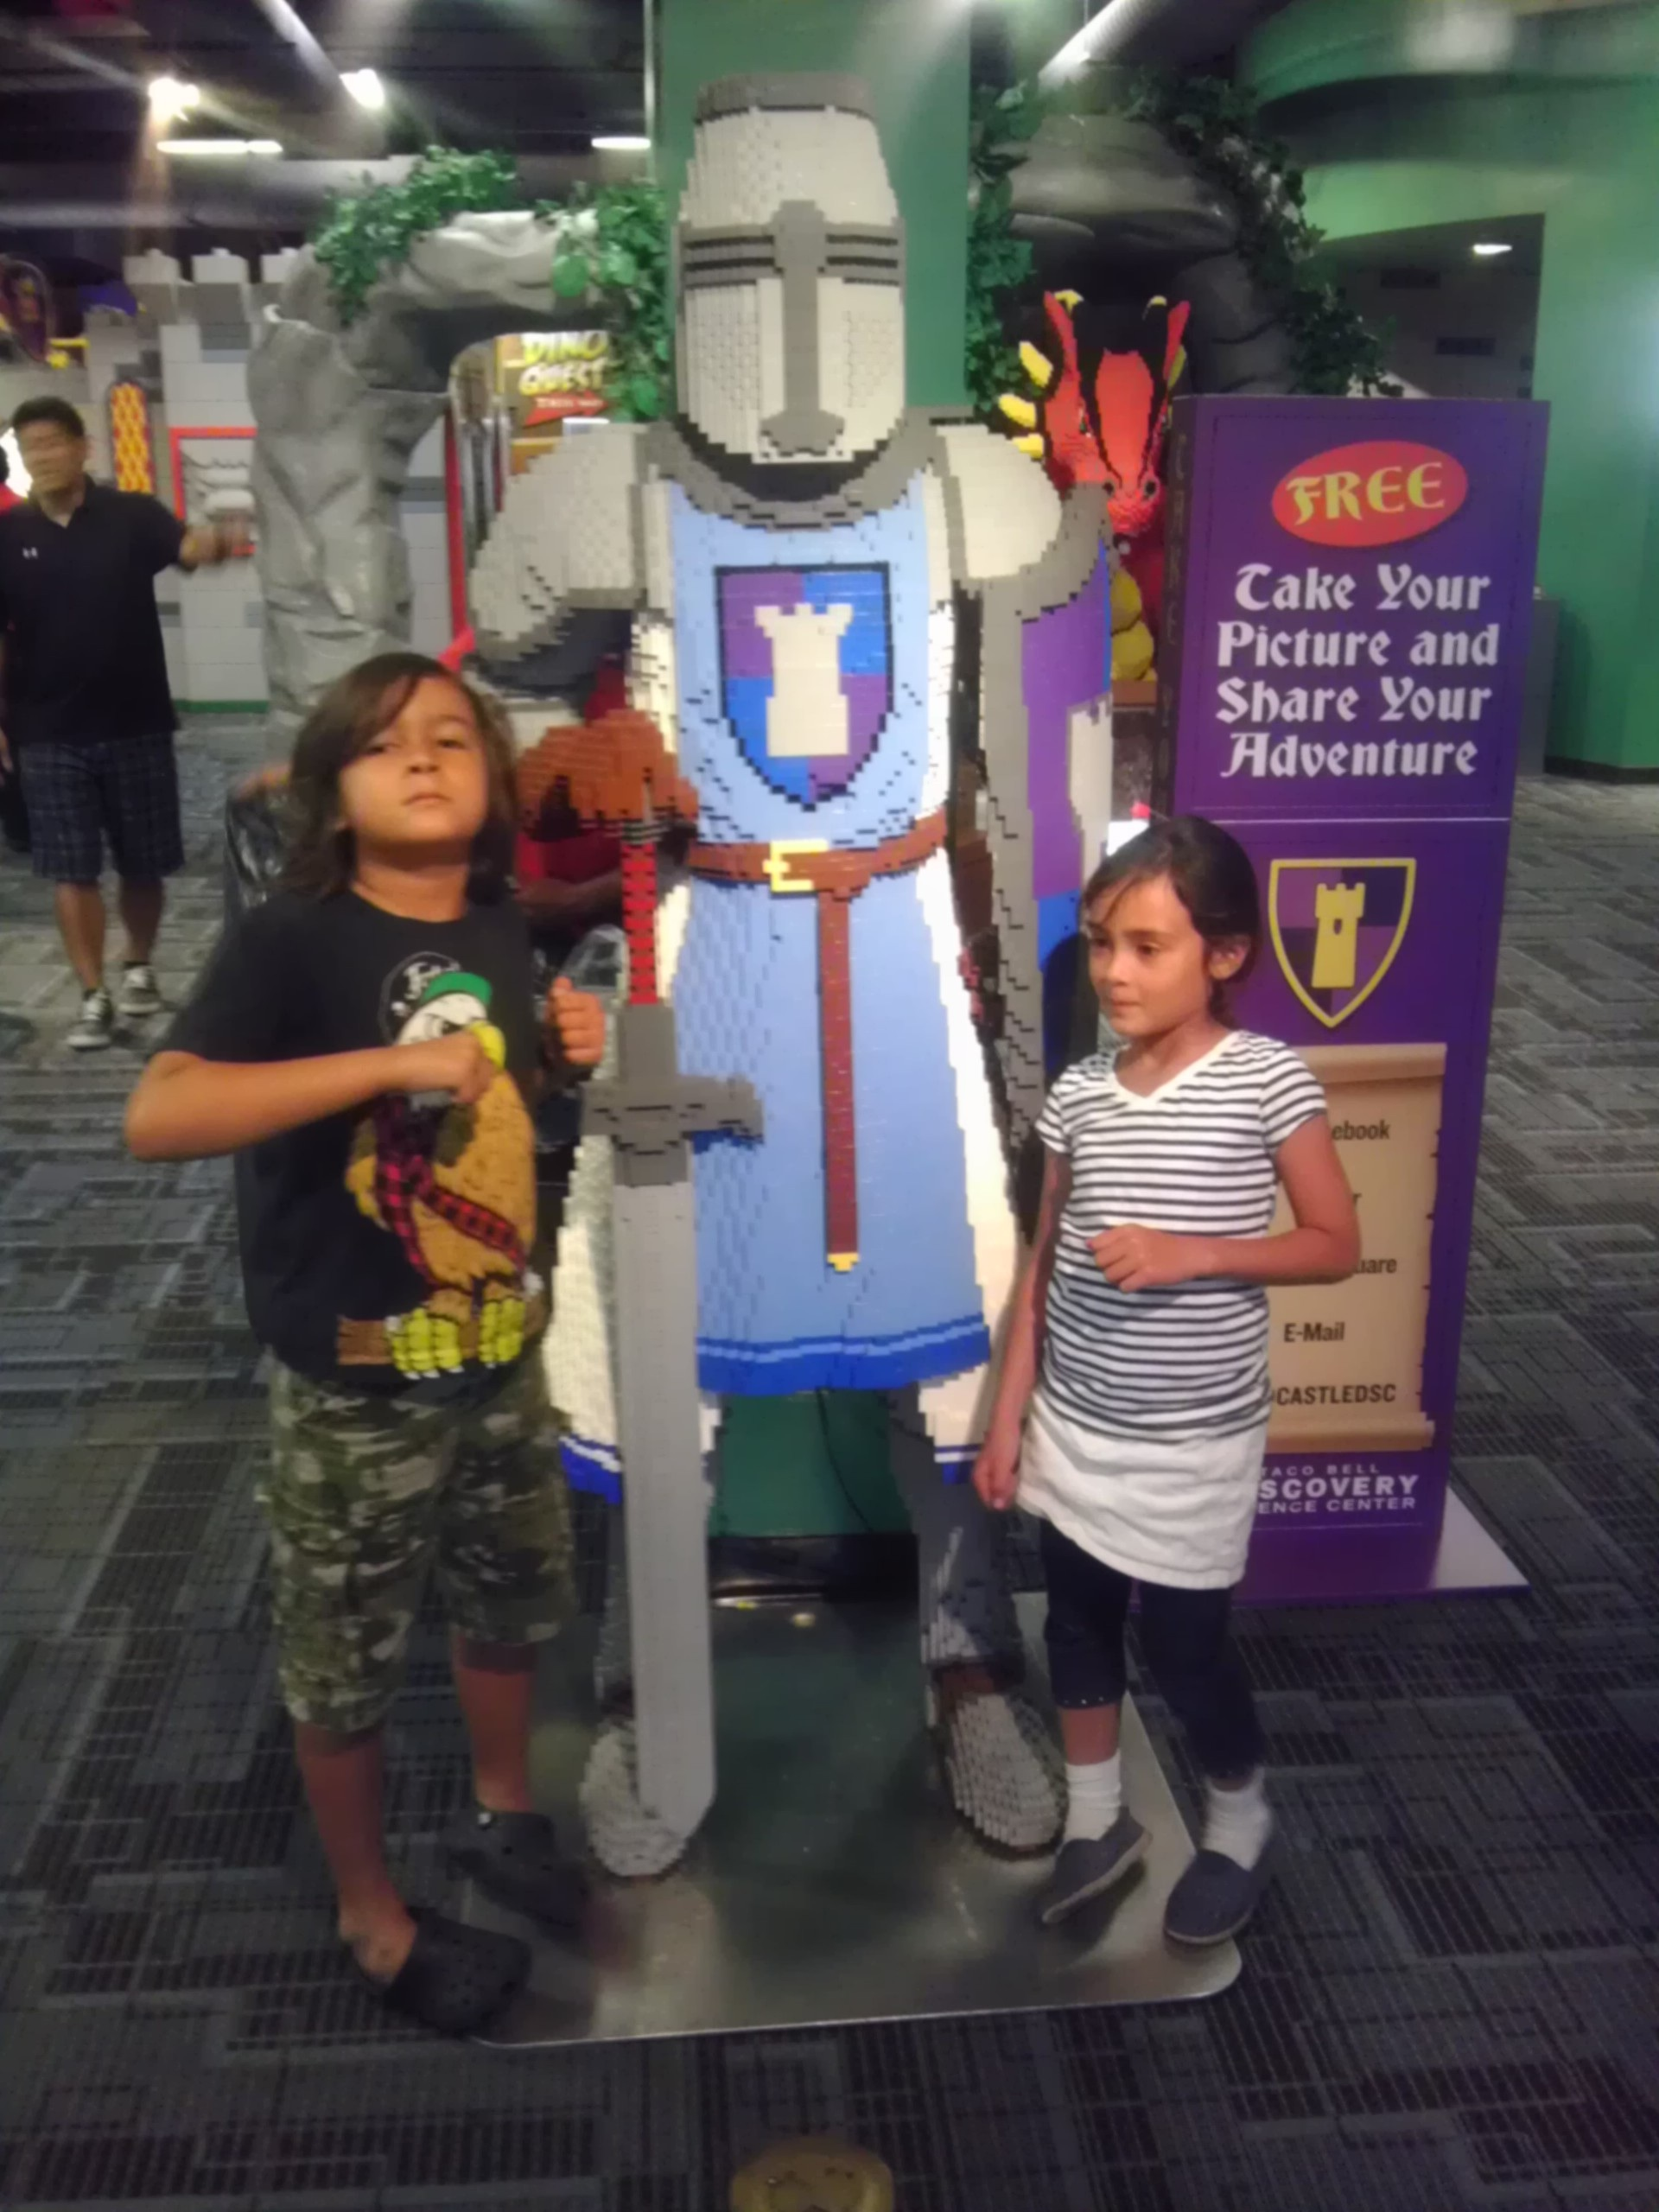 Summer Fun With LEGO and DaVinci at Discovery Science Center